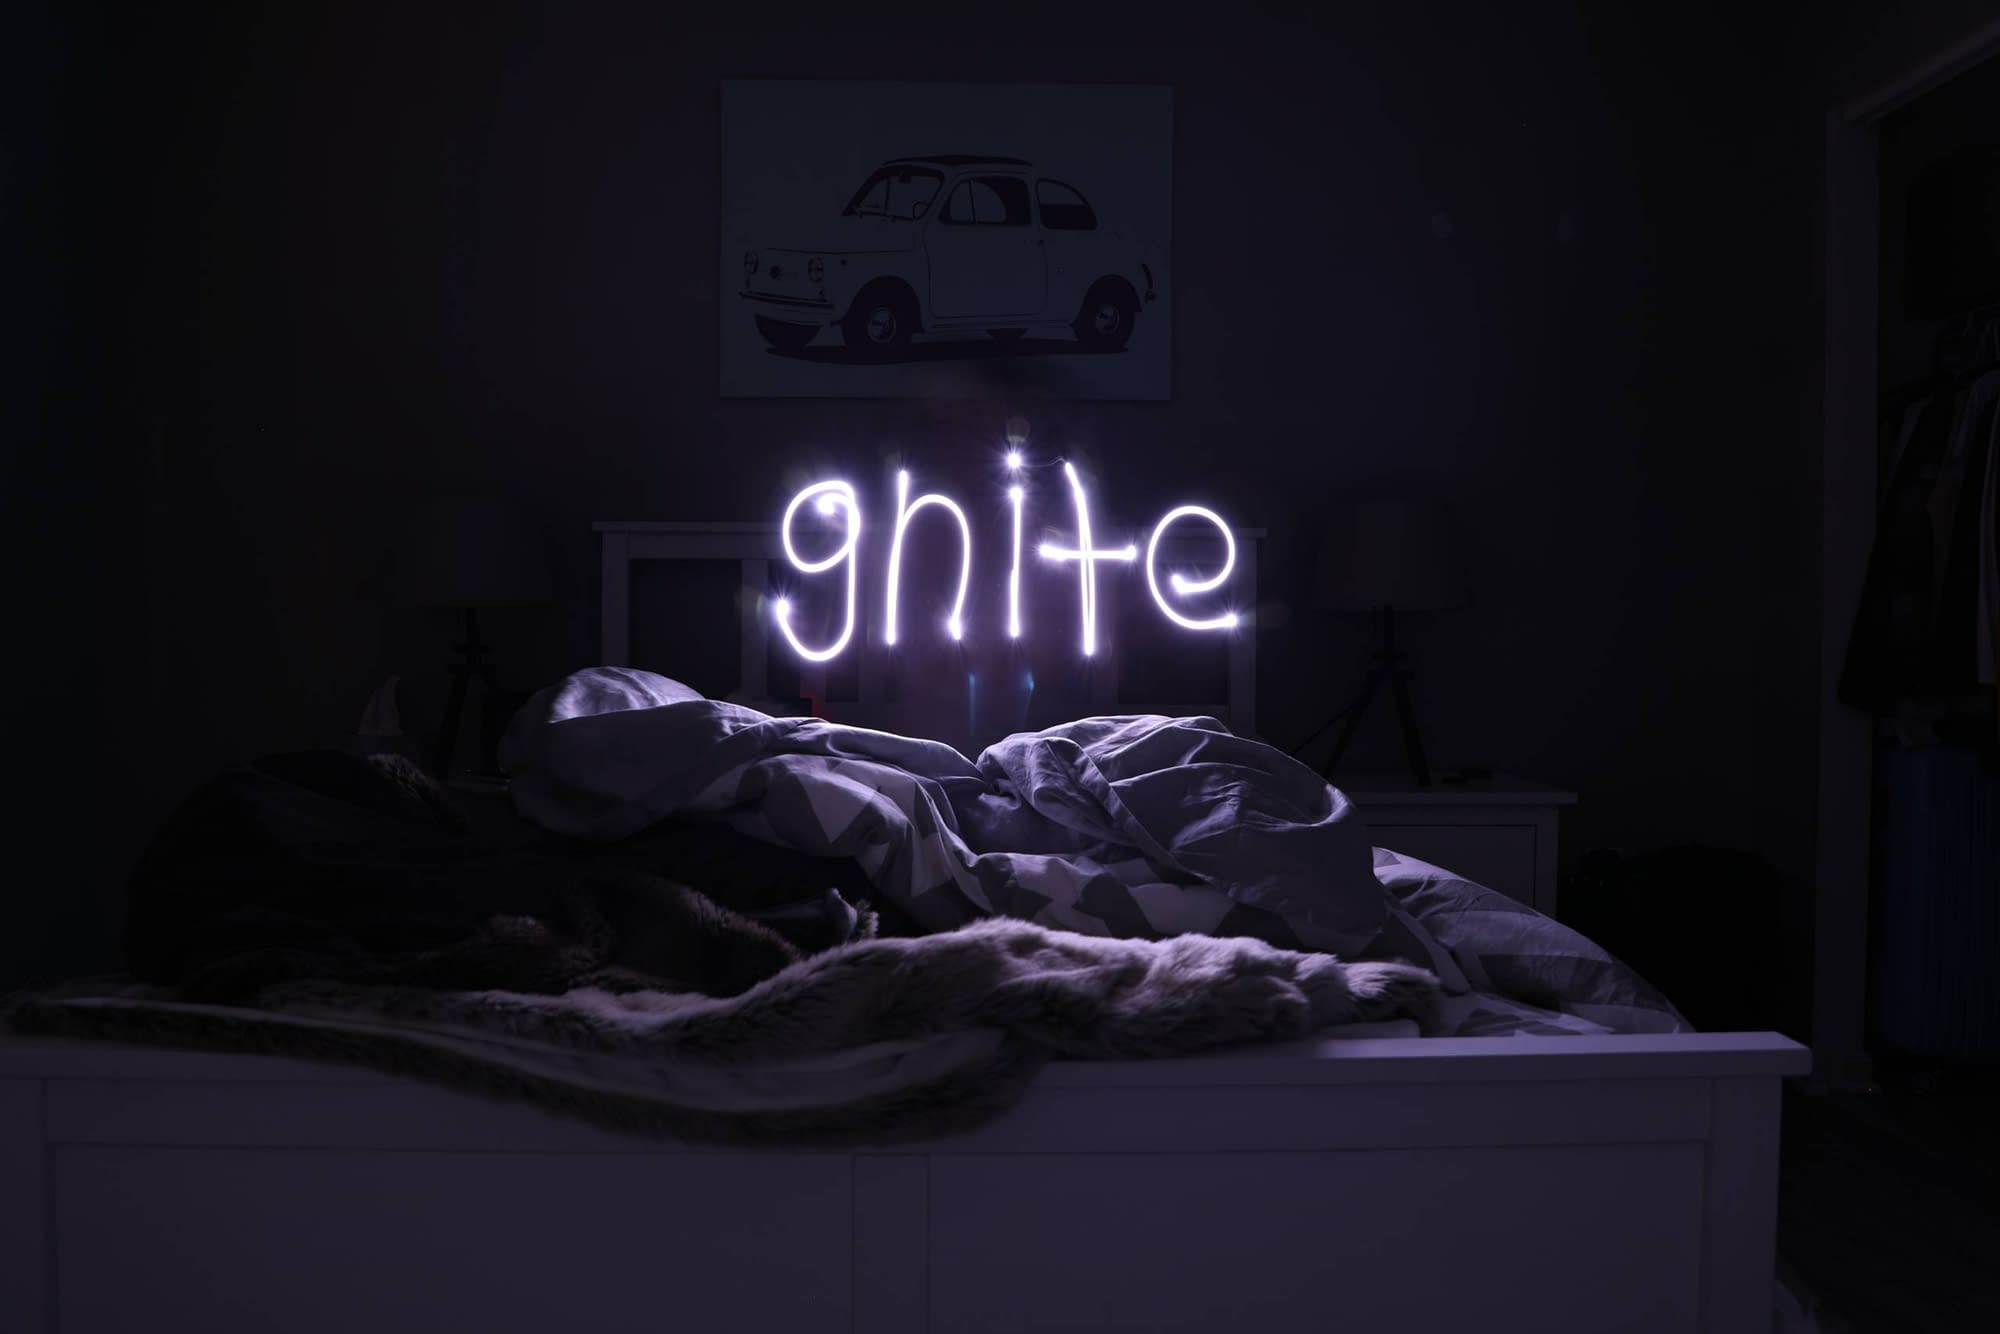 Good night light above a bed